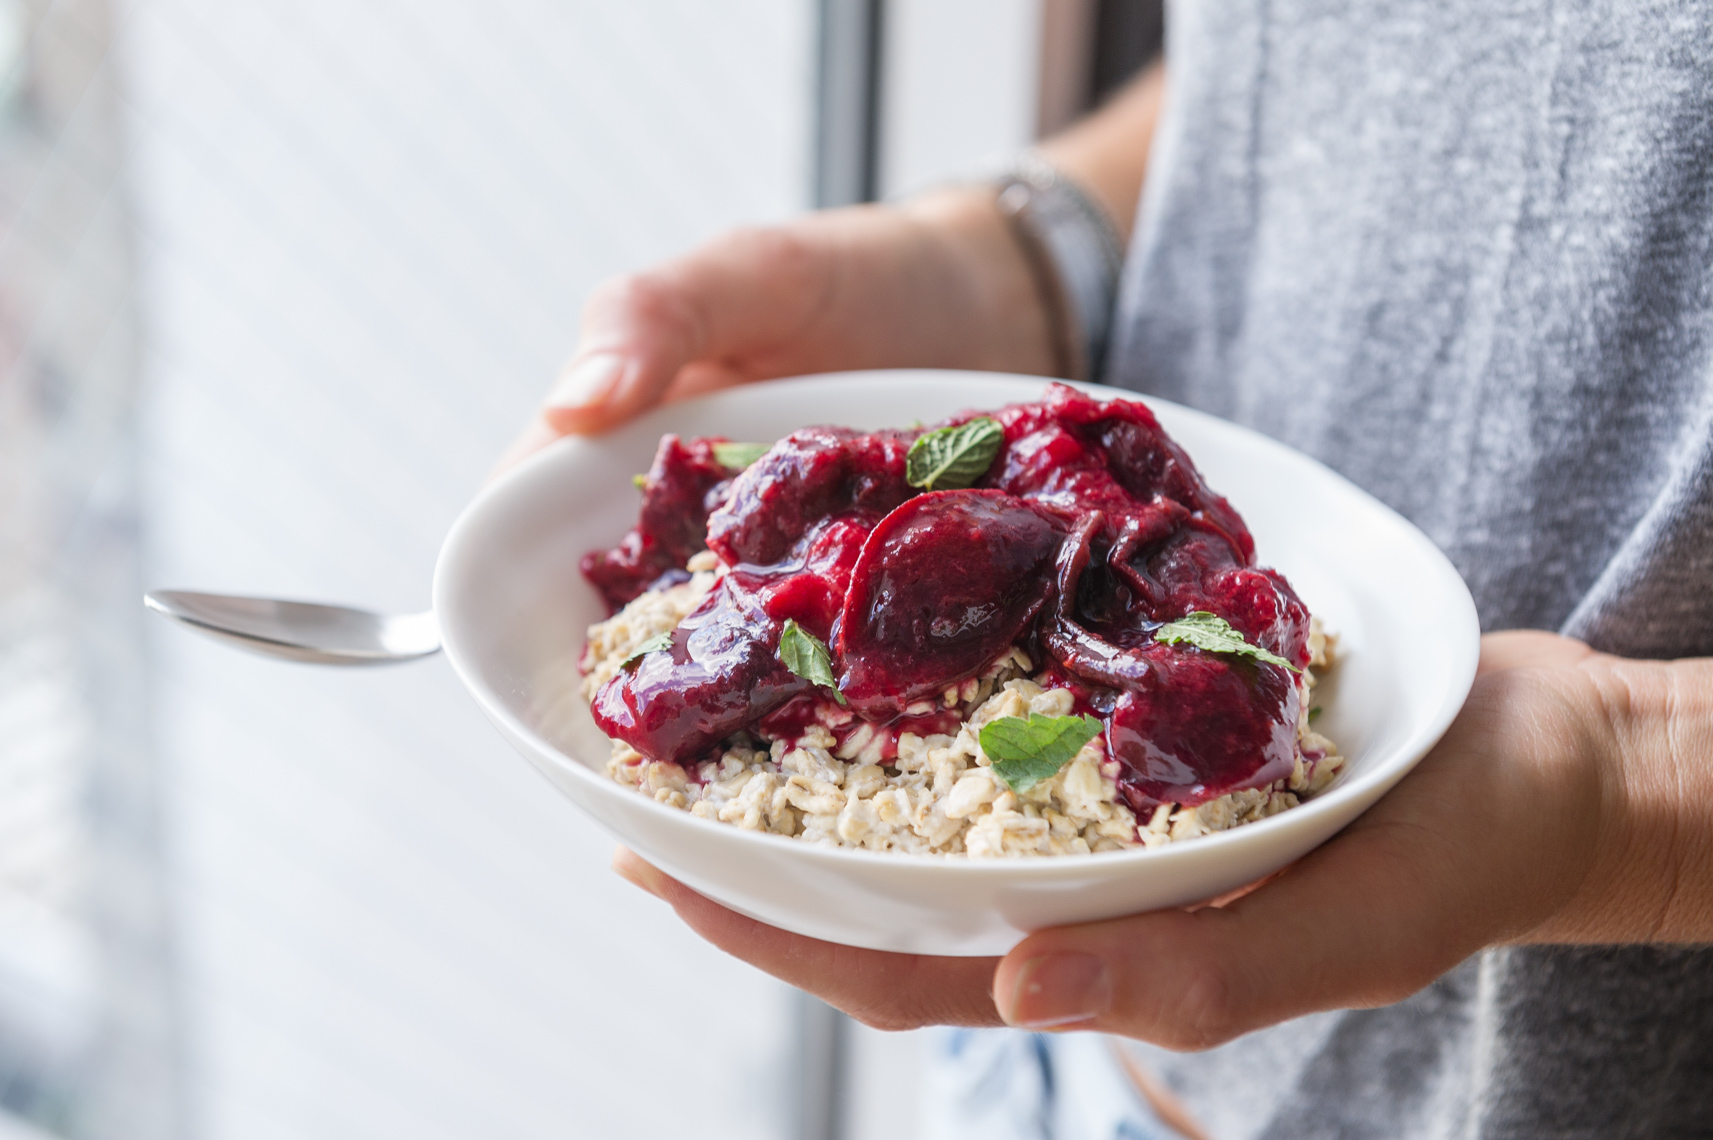 NYC Food Photographer - Overnight Plum Oats